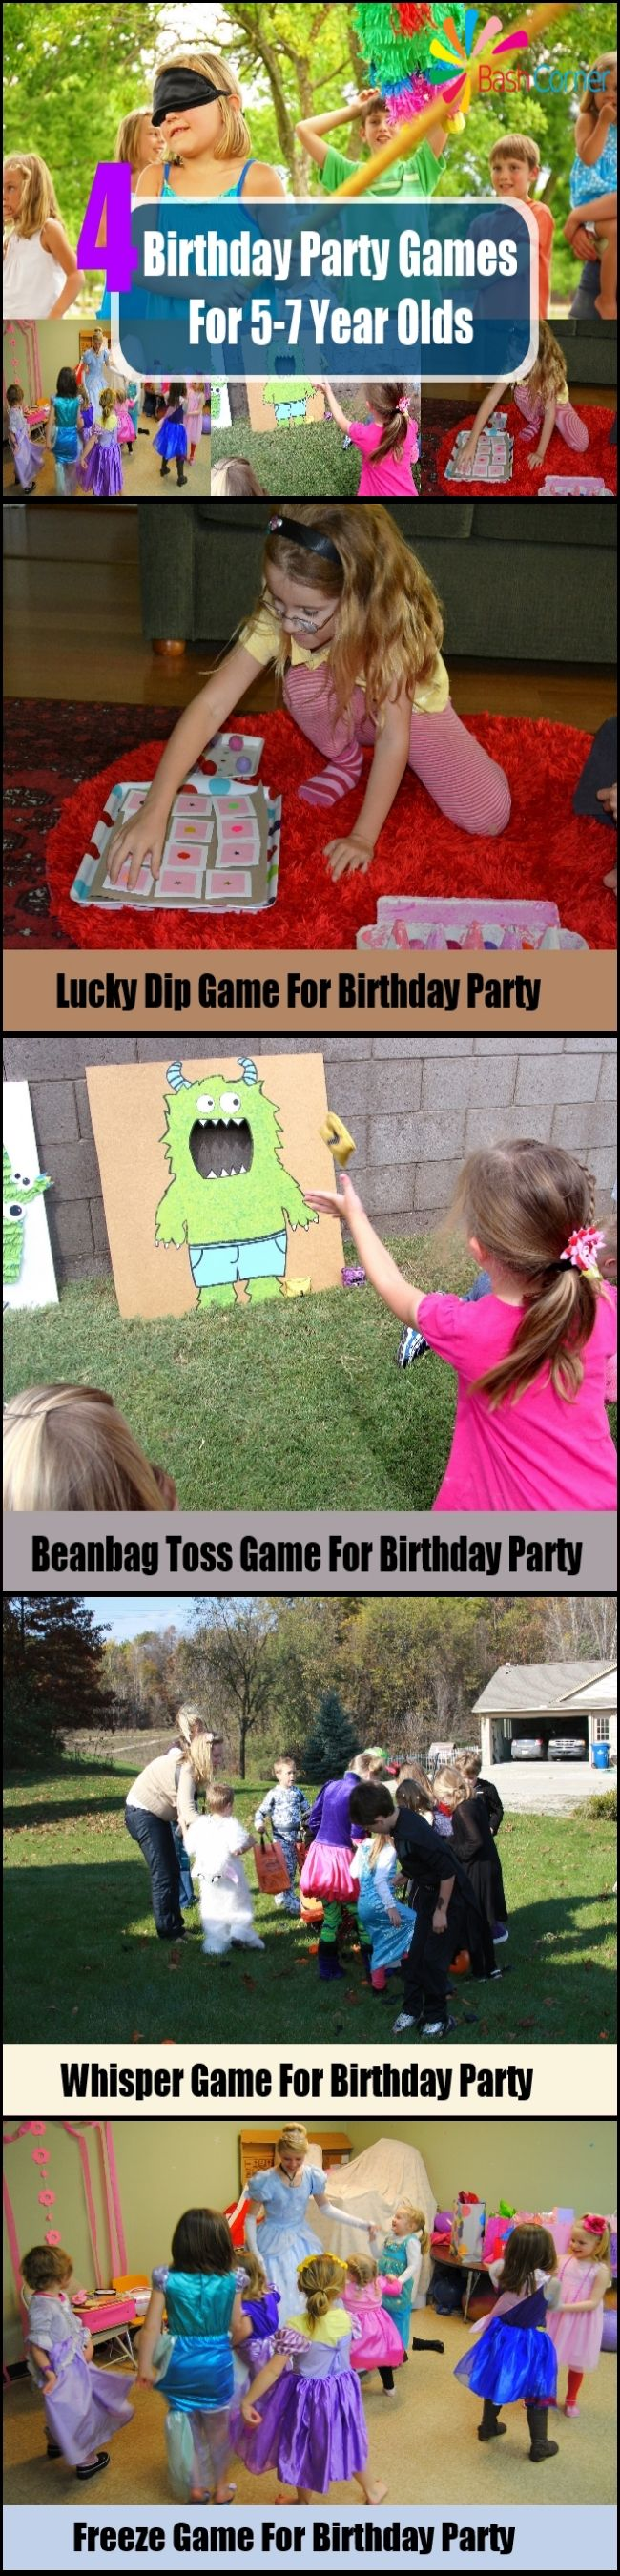 4 Birthday Party Games For 57 Year Olds Celebration